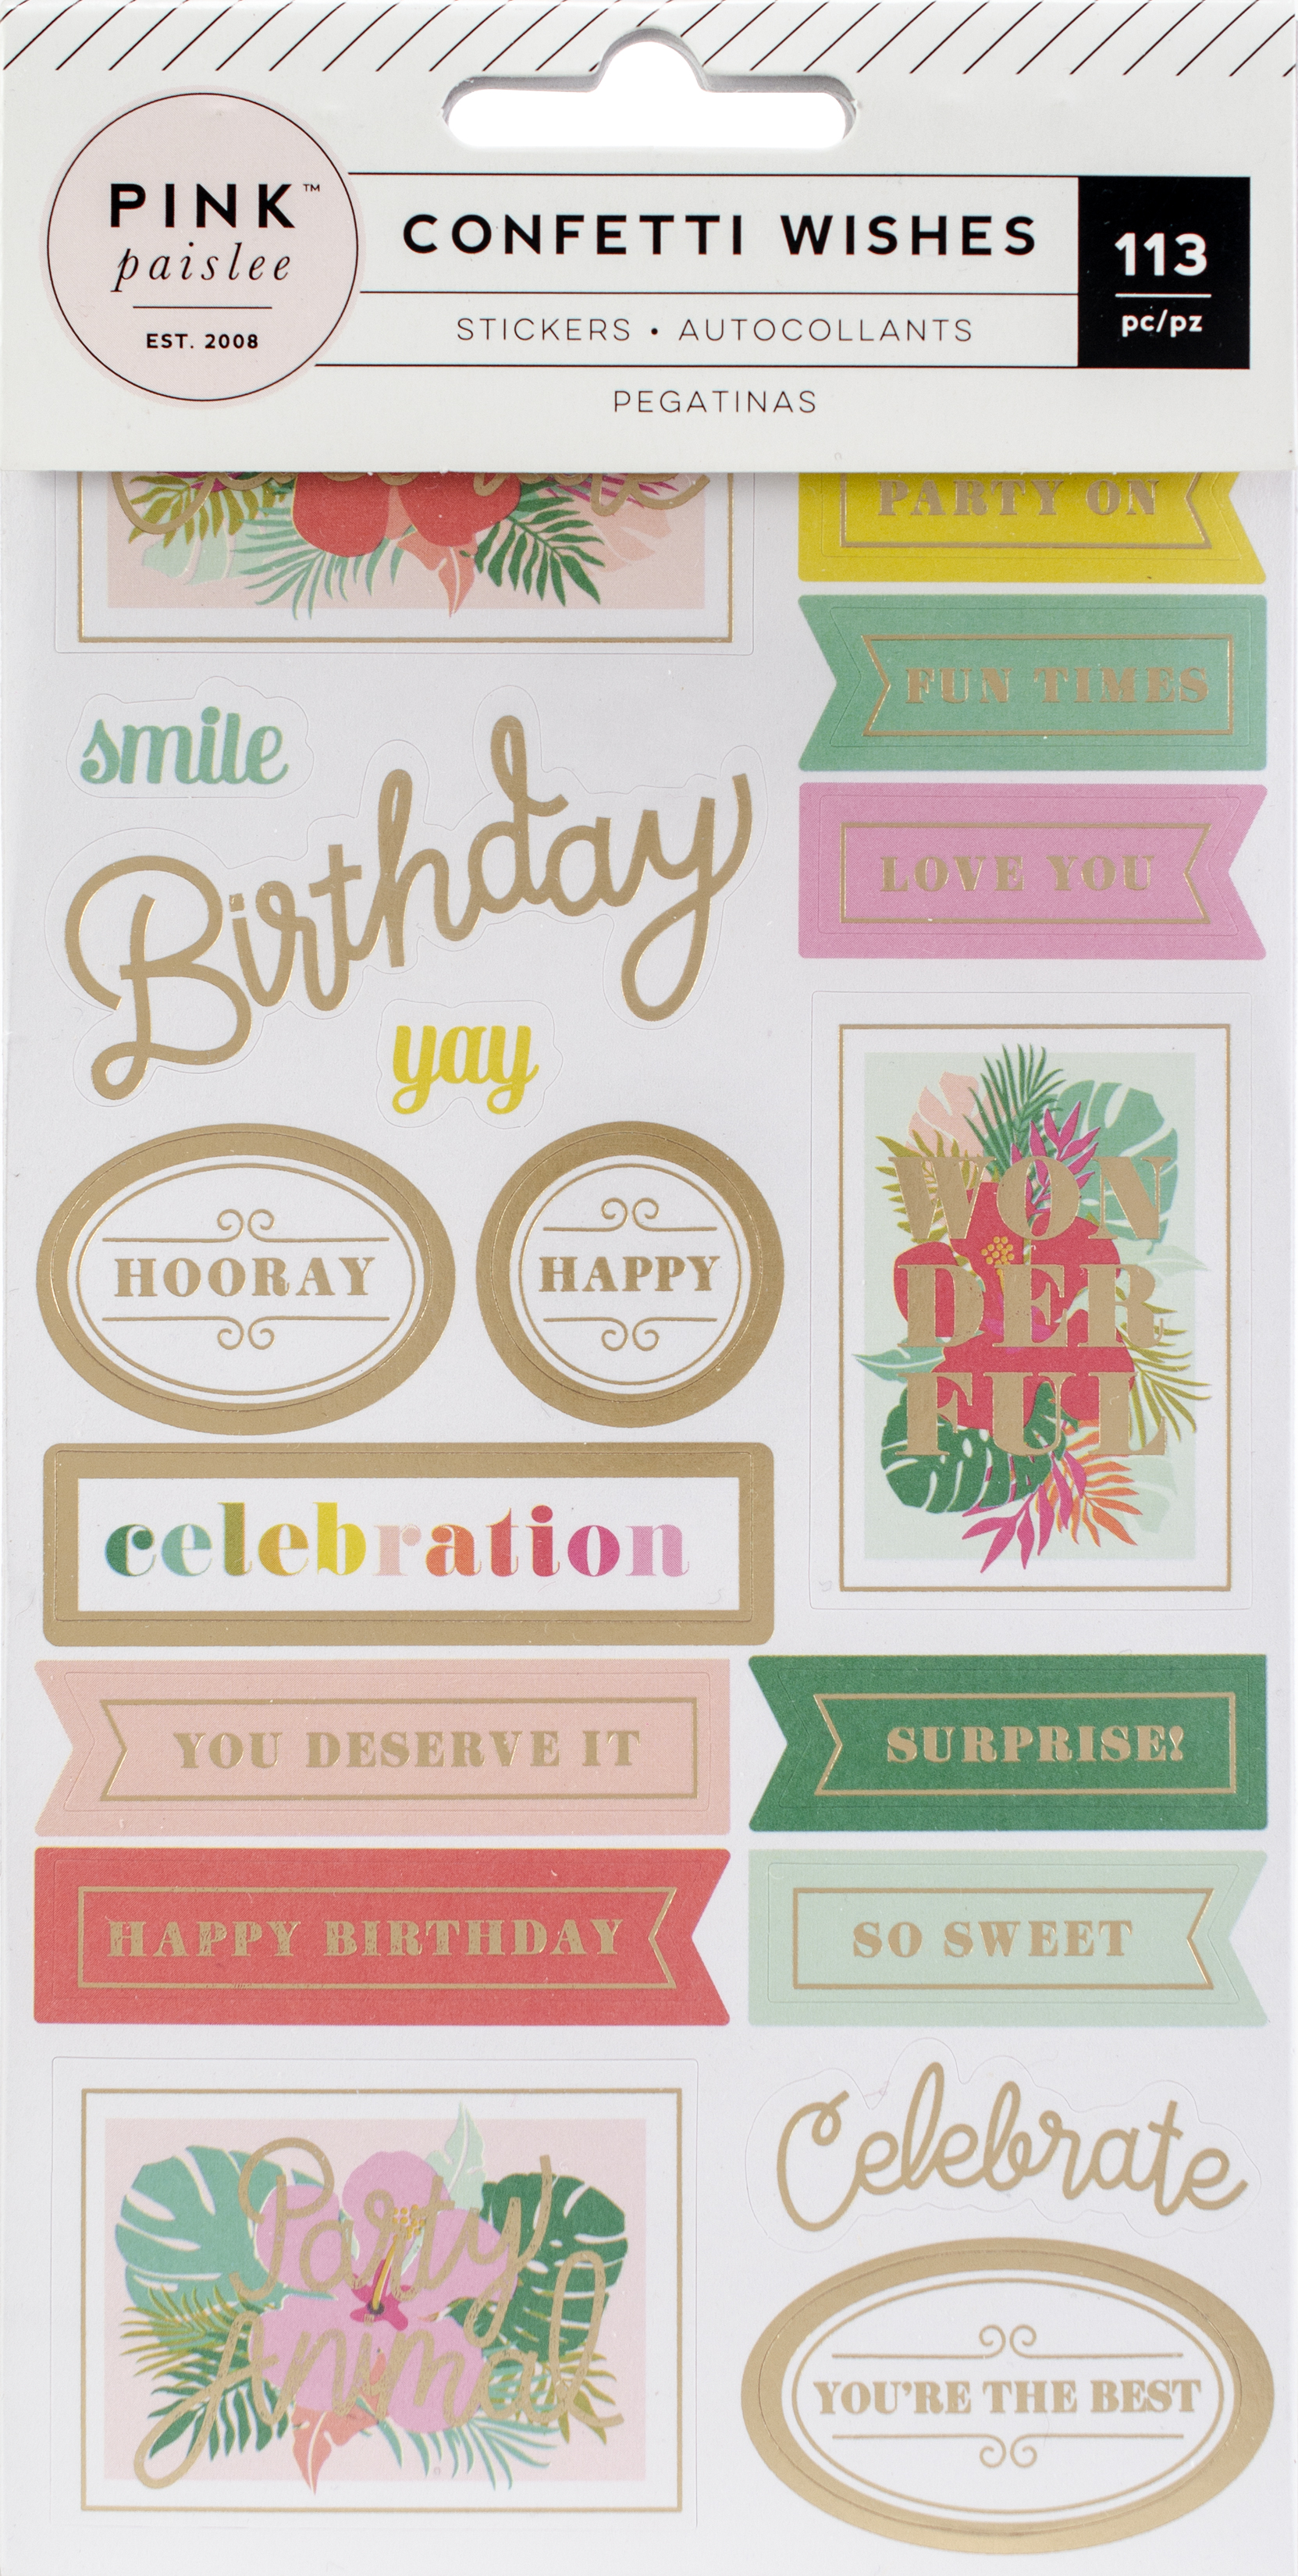 Confetti Wishes 4-Page Sticker Book-W/Matte Gold Foil Accents